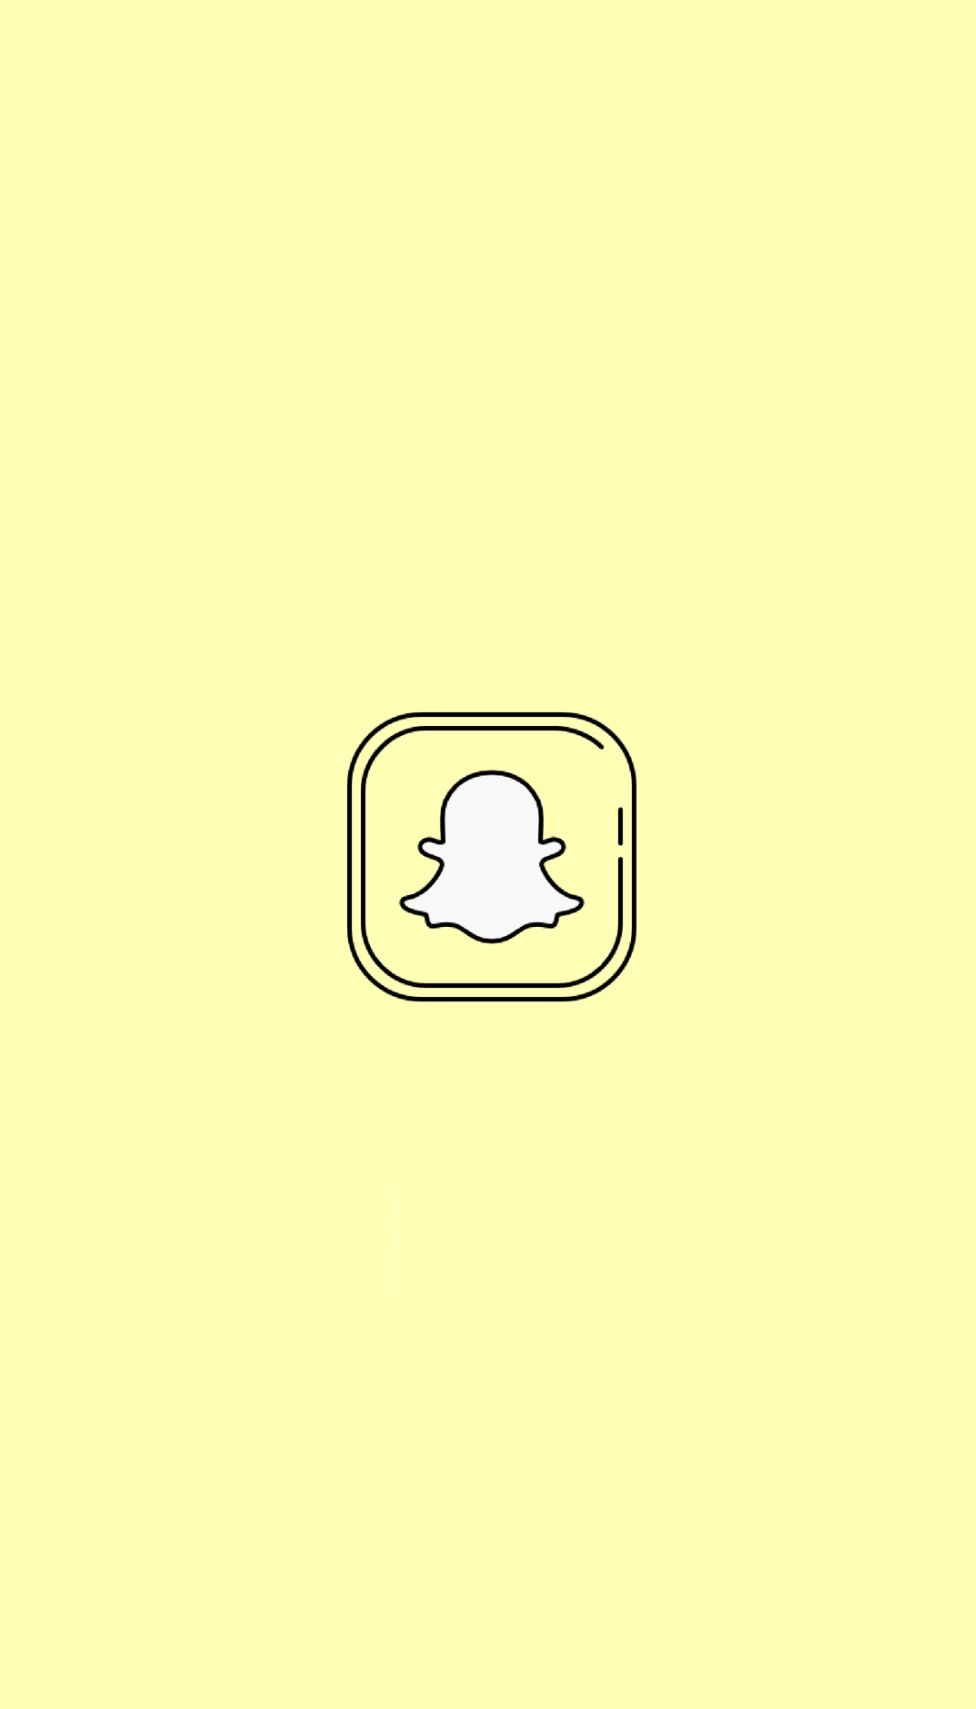 Snapchat Snapchat Logo Iphone Icon Cute App